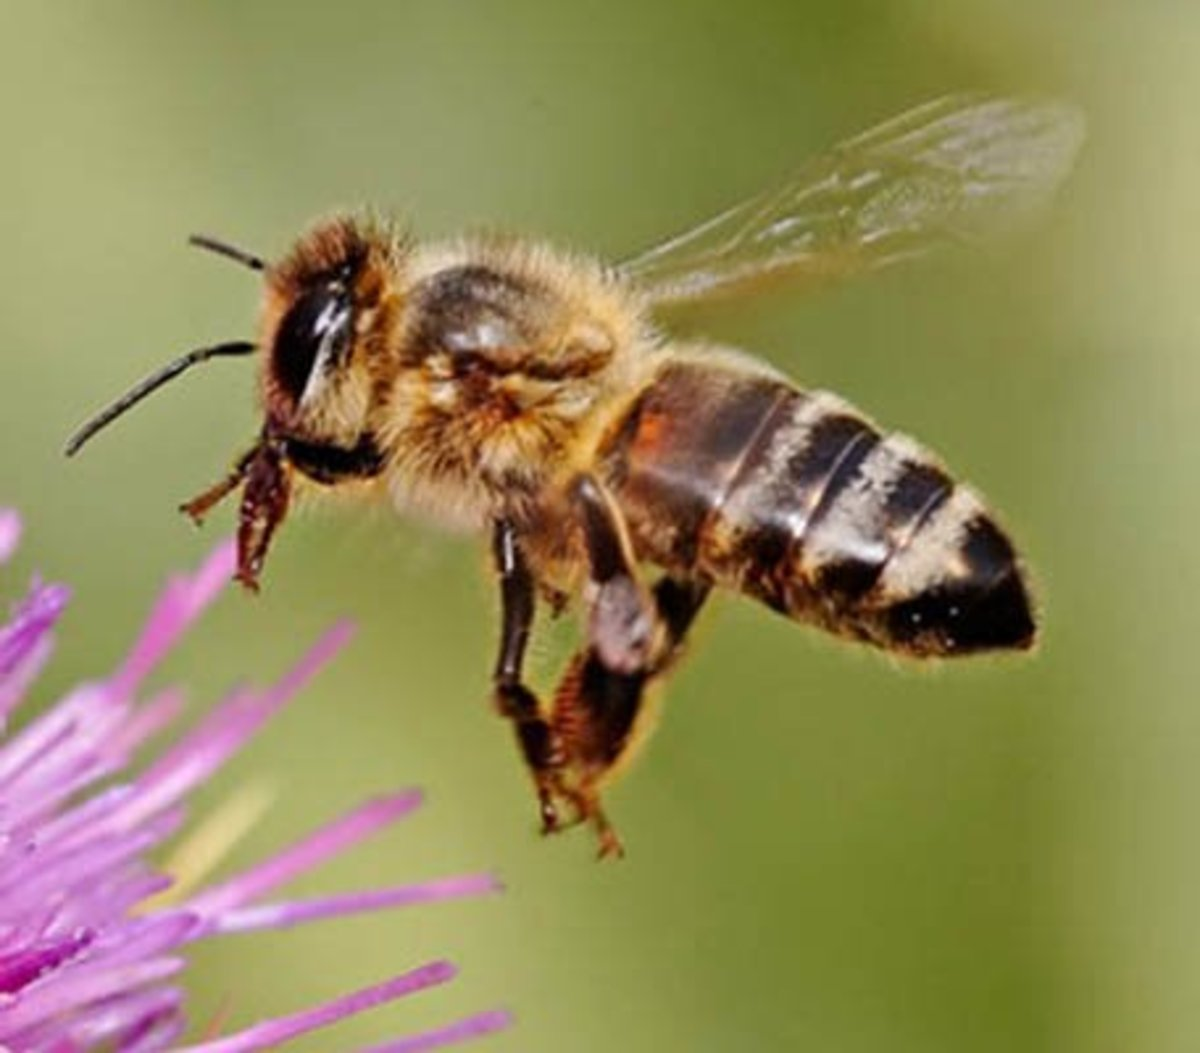 Bees, Pollination, and Habitat Loss